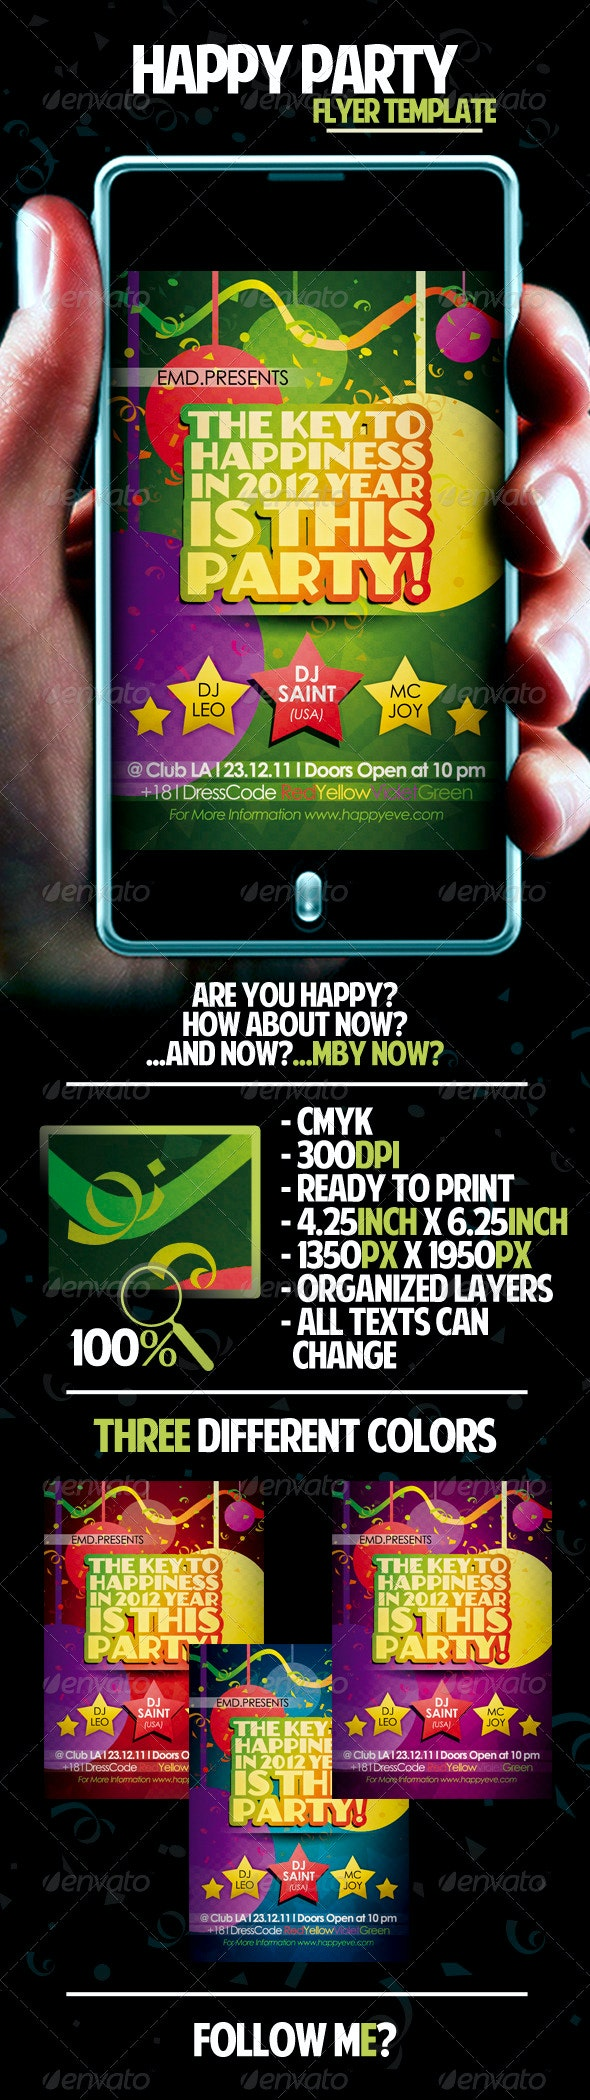 Happy Party Flyer Template - Clubs & Parties Events